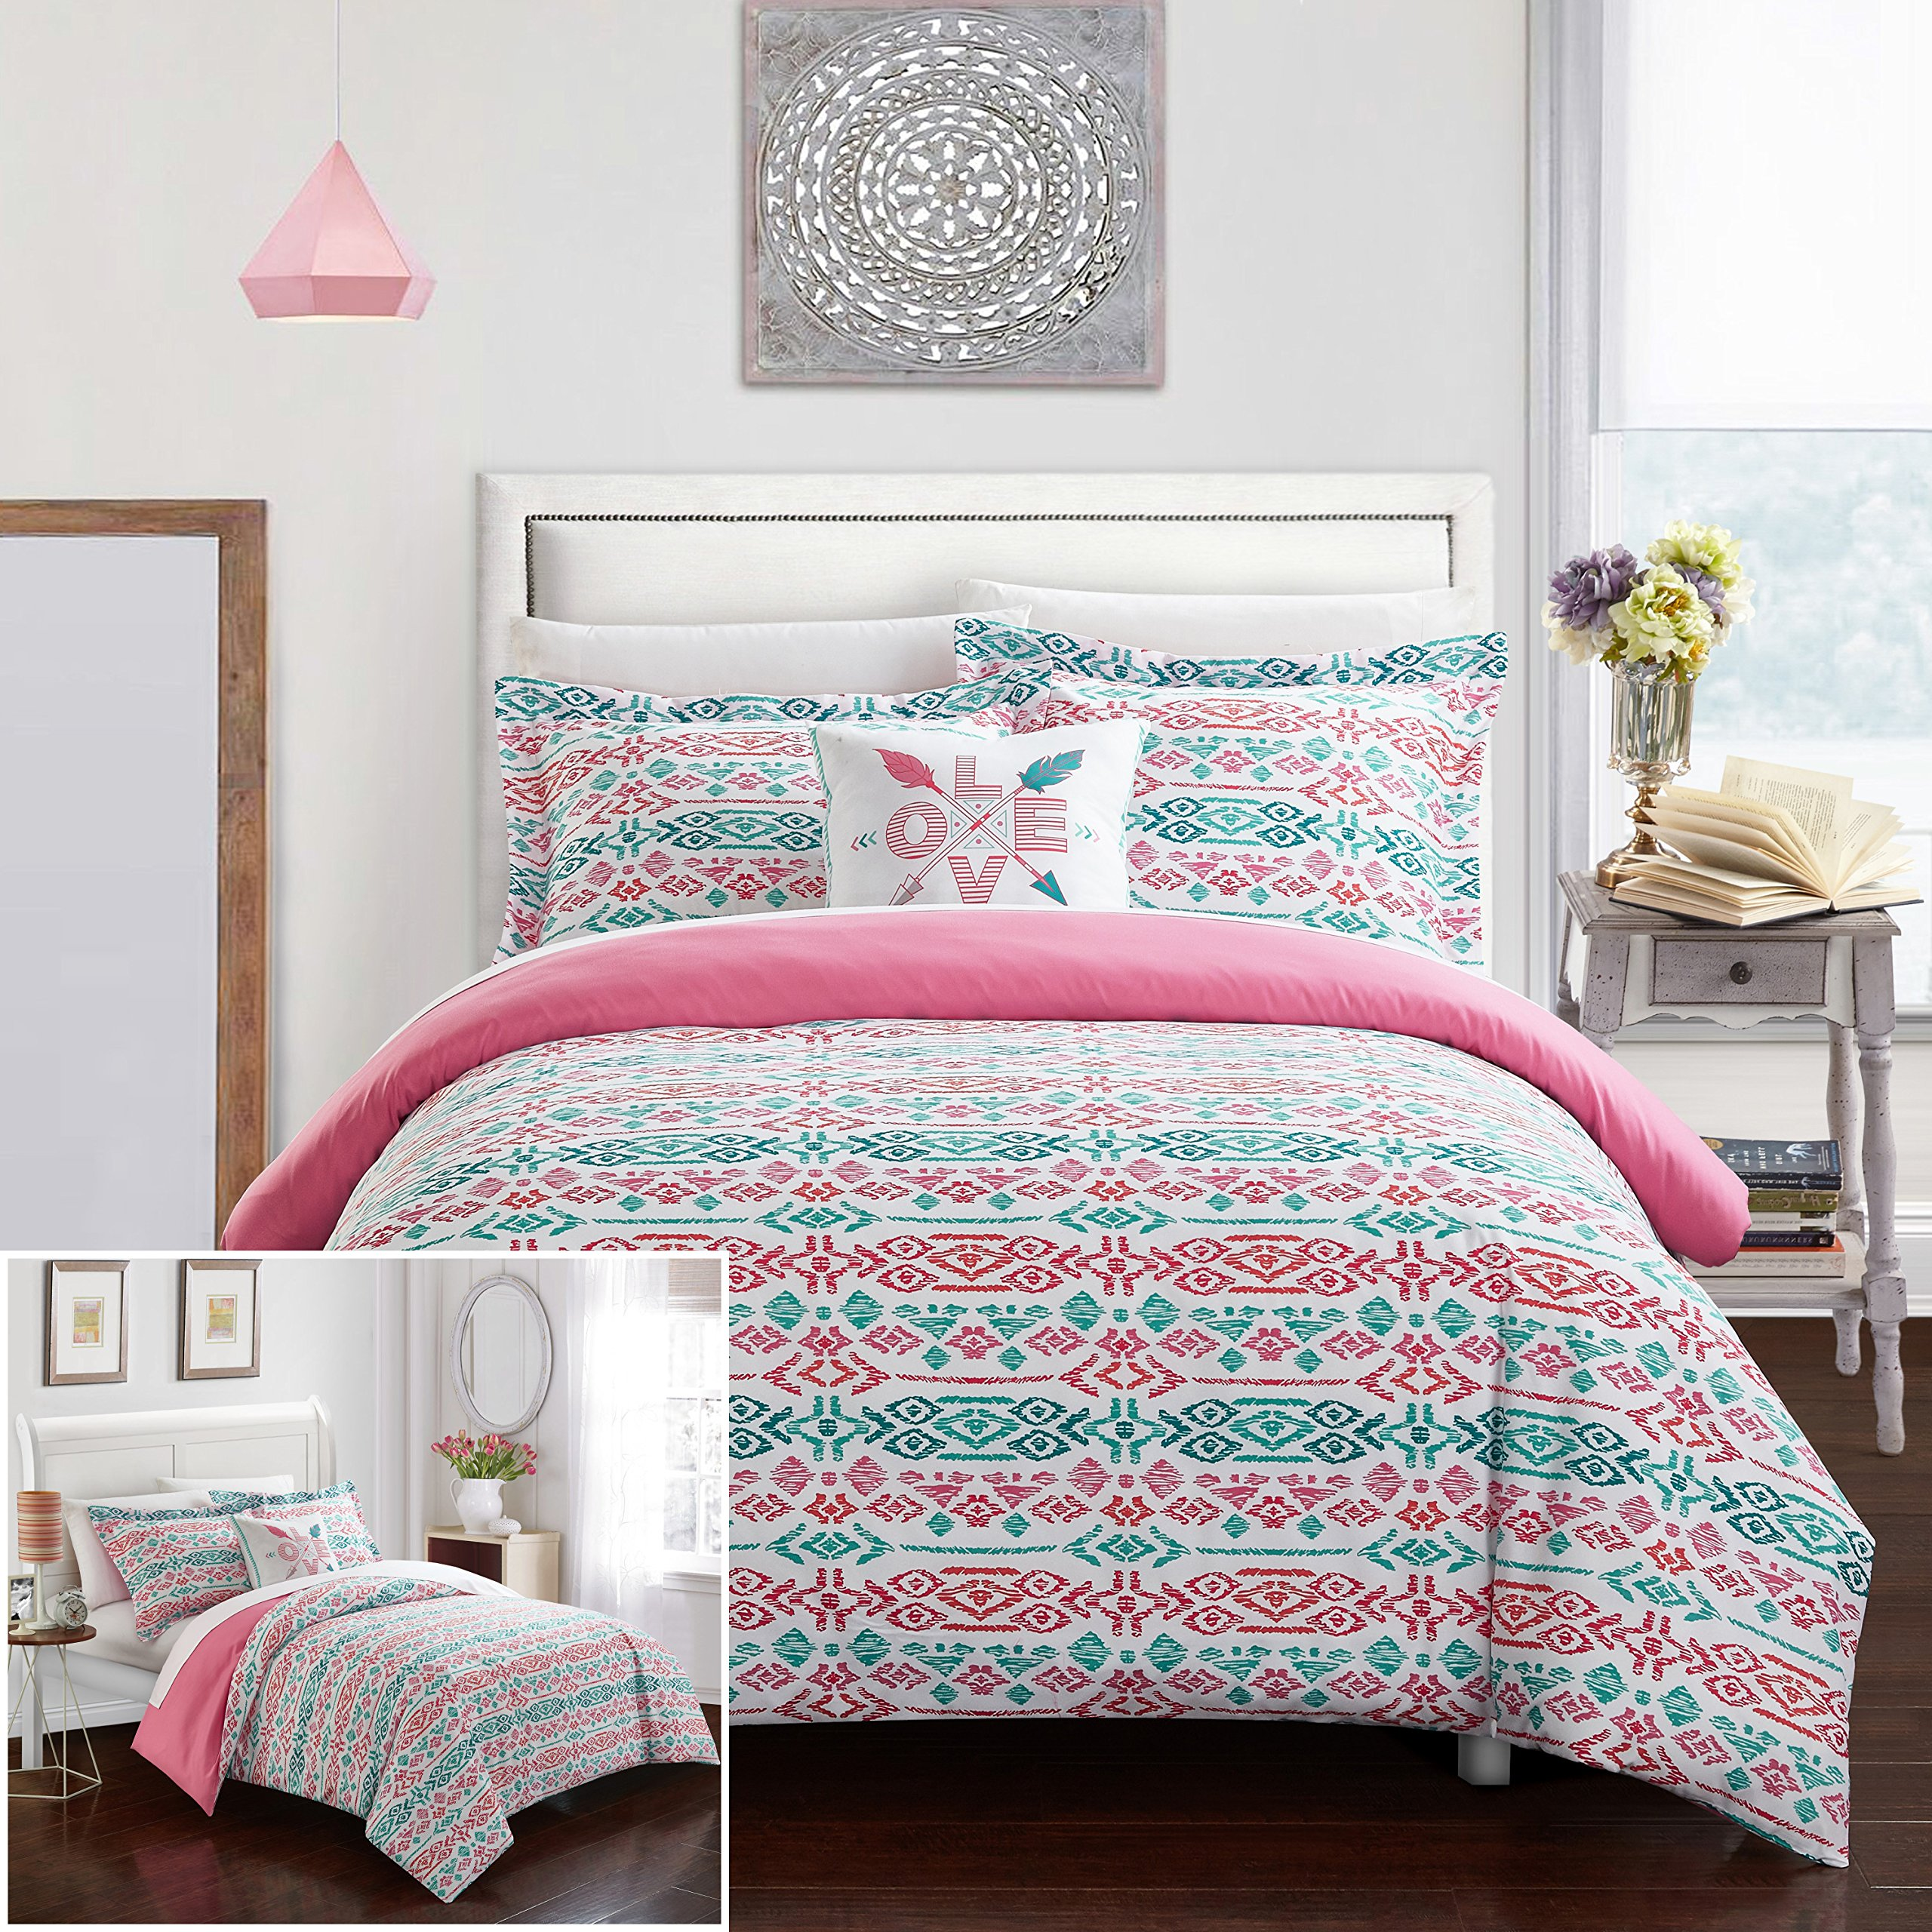 Chic Home 3 Piece Malina REVERSIBLE Ikat bohemian designer printed duvet and shams set, includes LOVE pillow Twin Duvet Cover Set Aqua